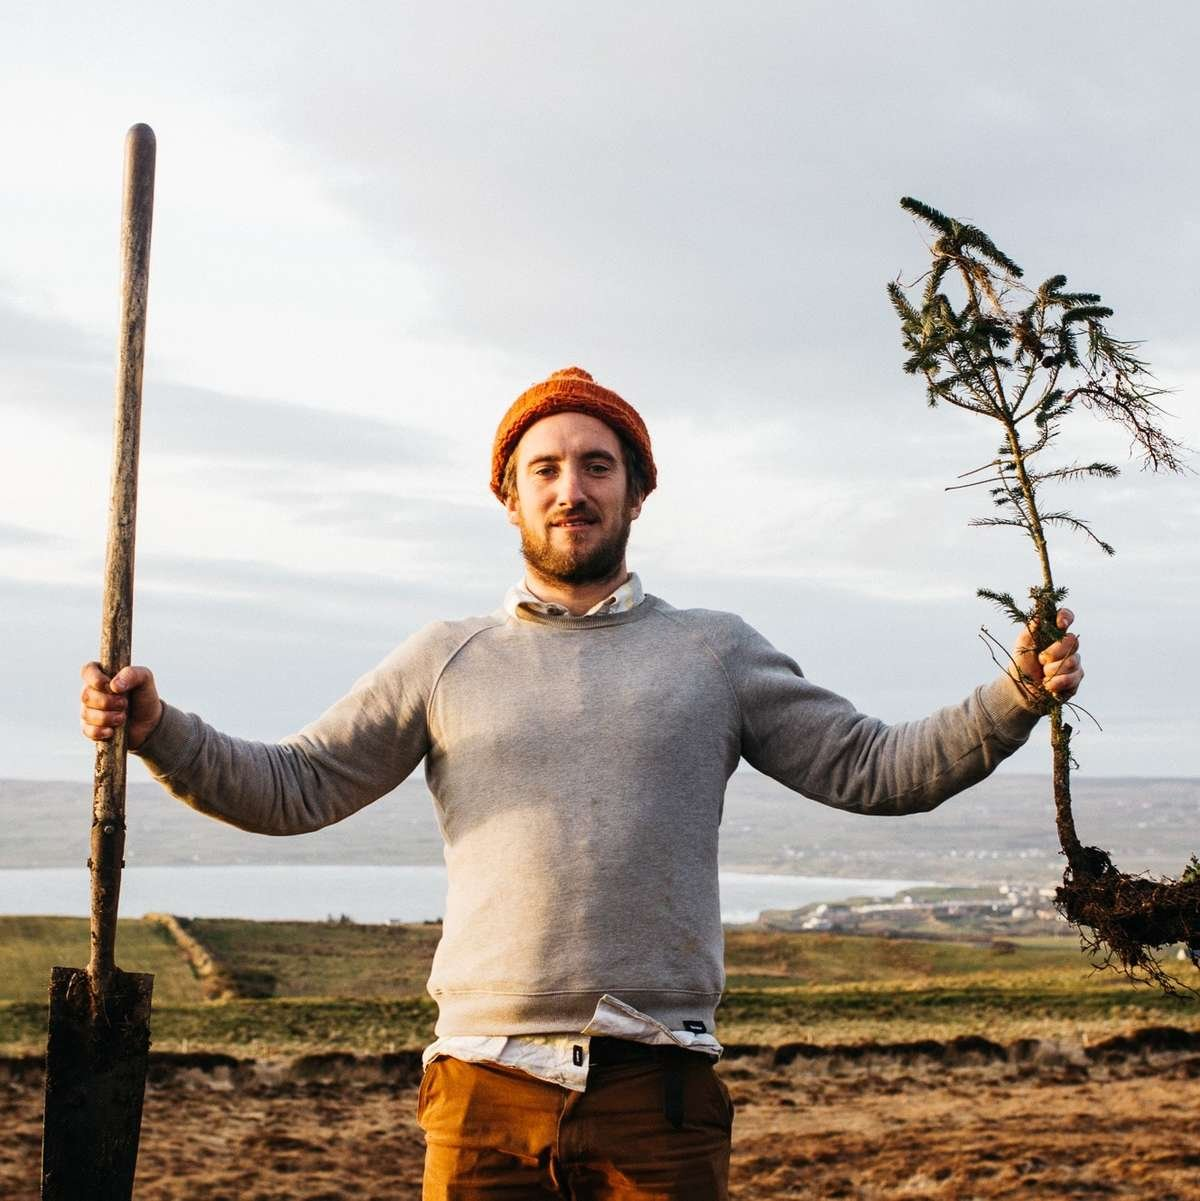 irish tree planter holds up a spade and a tree spaling